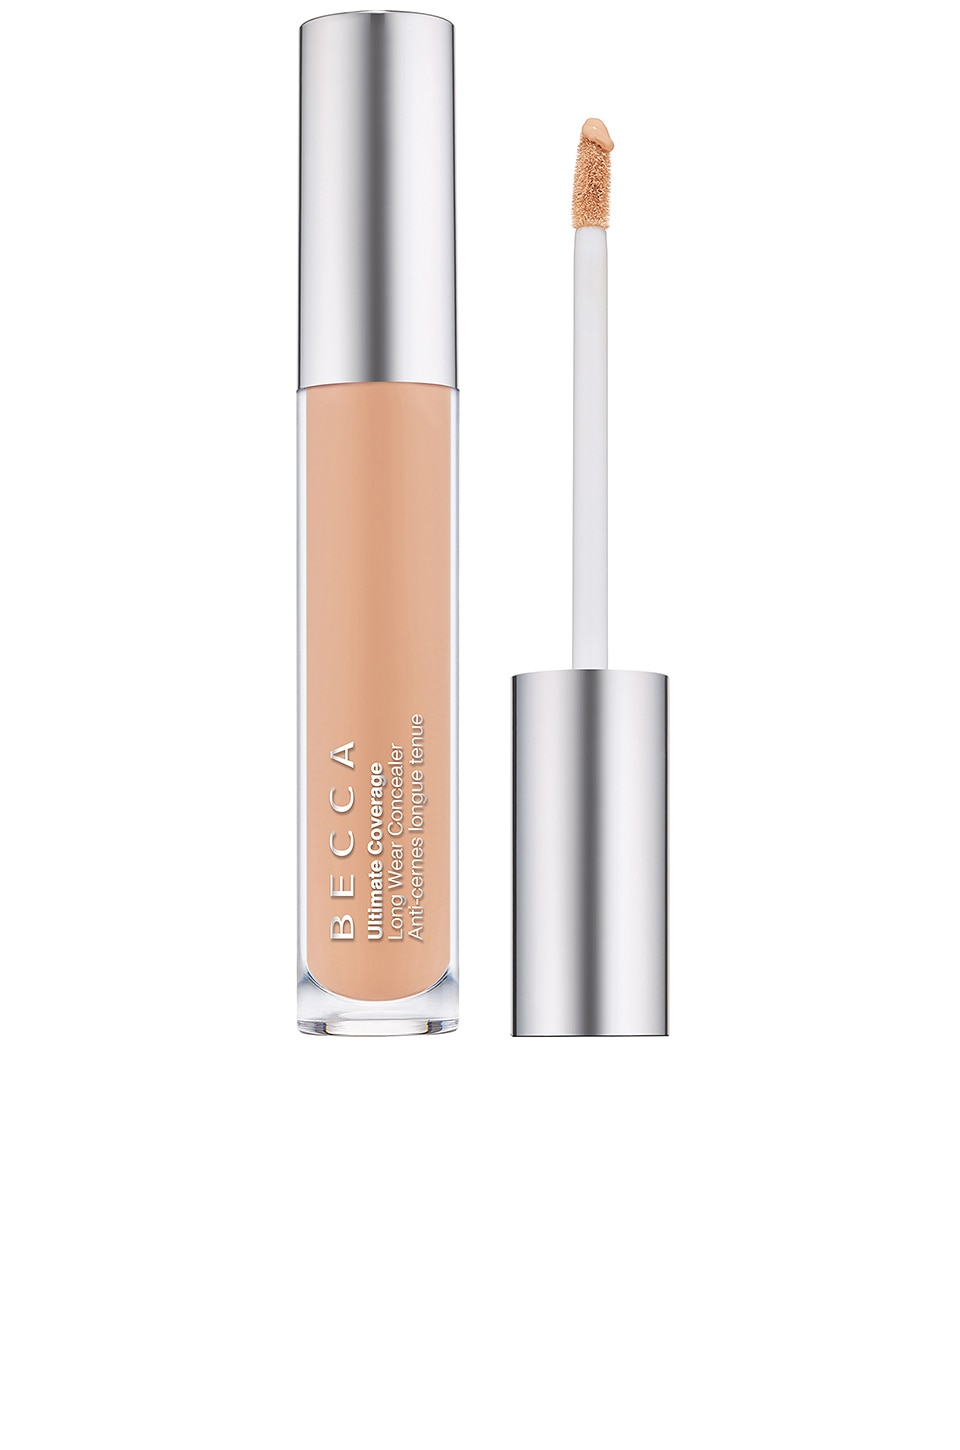 BECCA CORRECTOR ULTIMATE COVERAGE